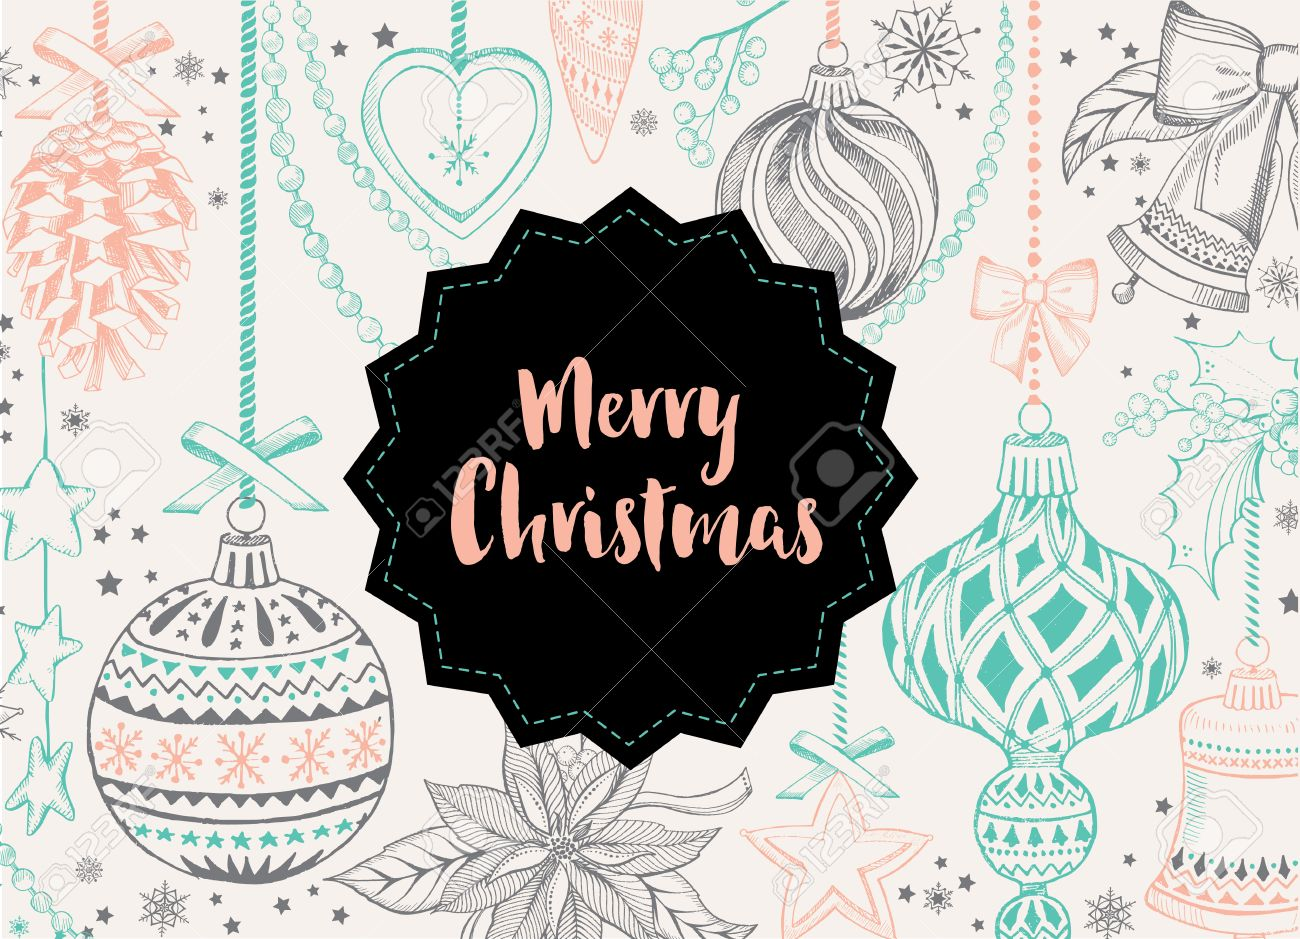 Poster design vector graphics - Vector Merry Christmas Poster Design Vector Holiday Template With Xmas Hand Drawn Graphic